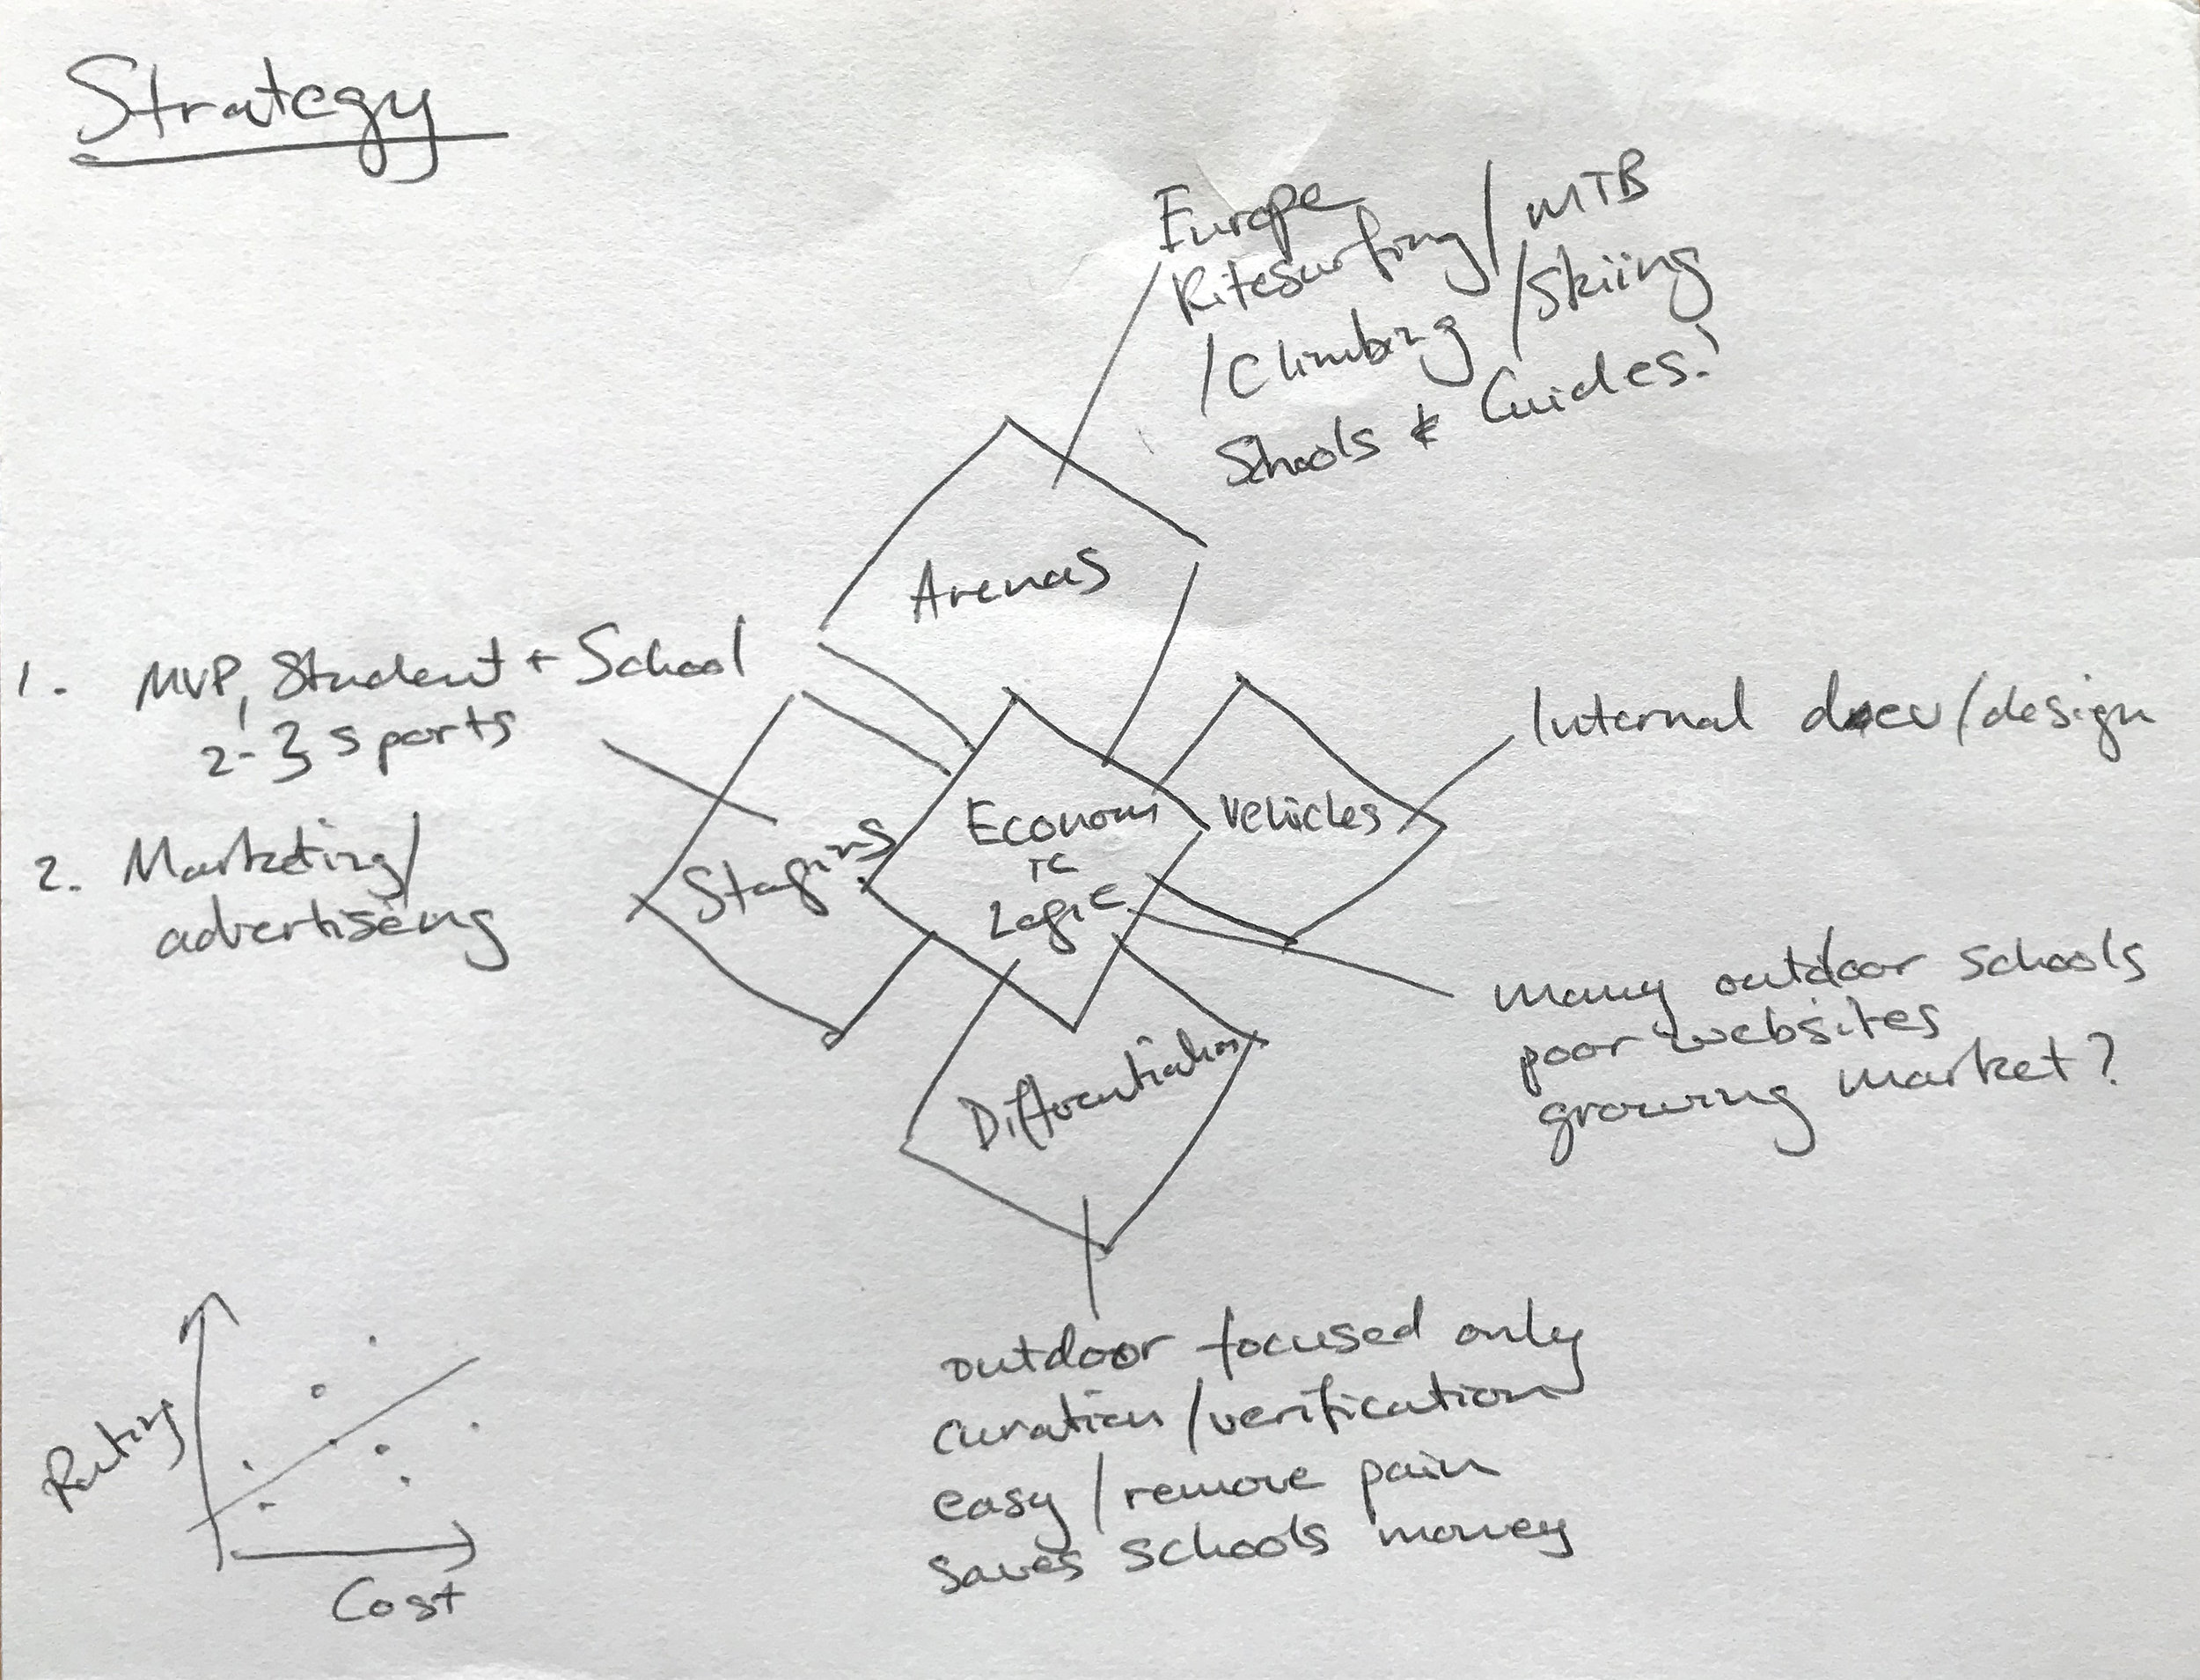 ↑ initial strategy diagrams